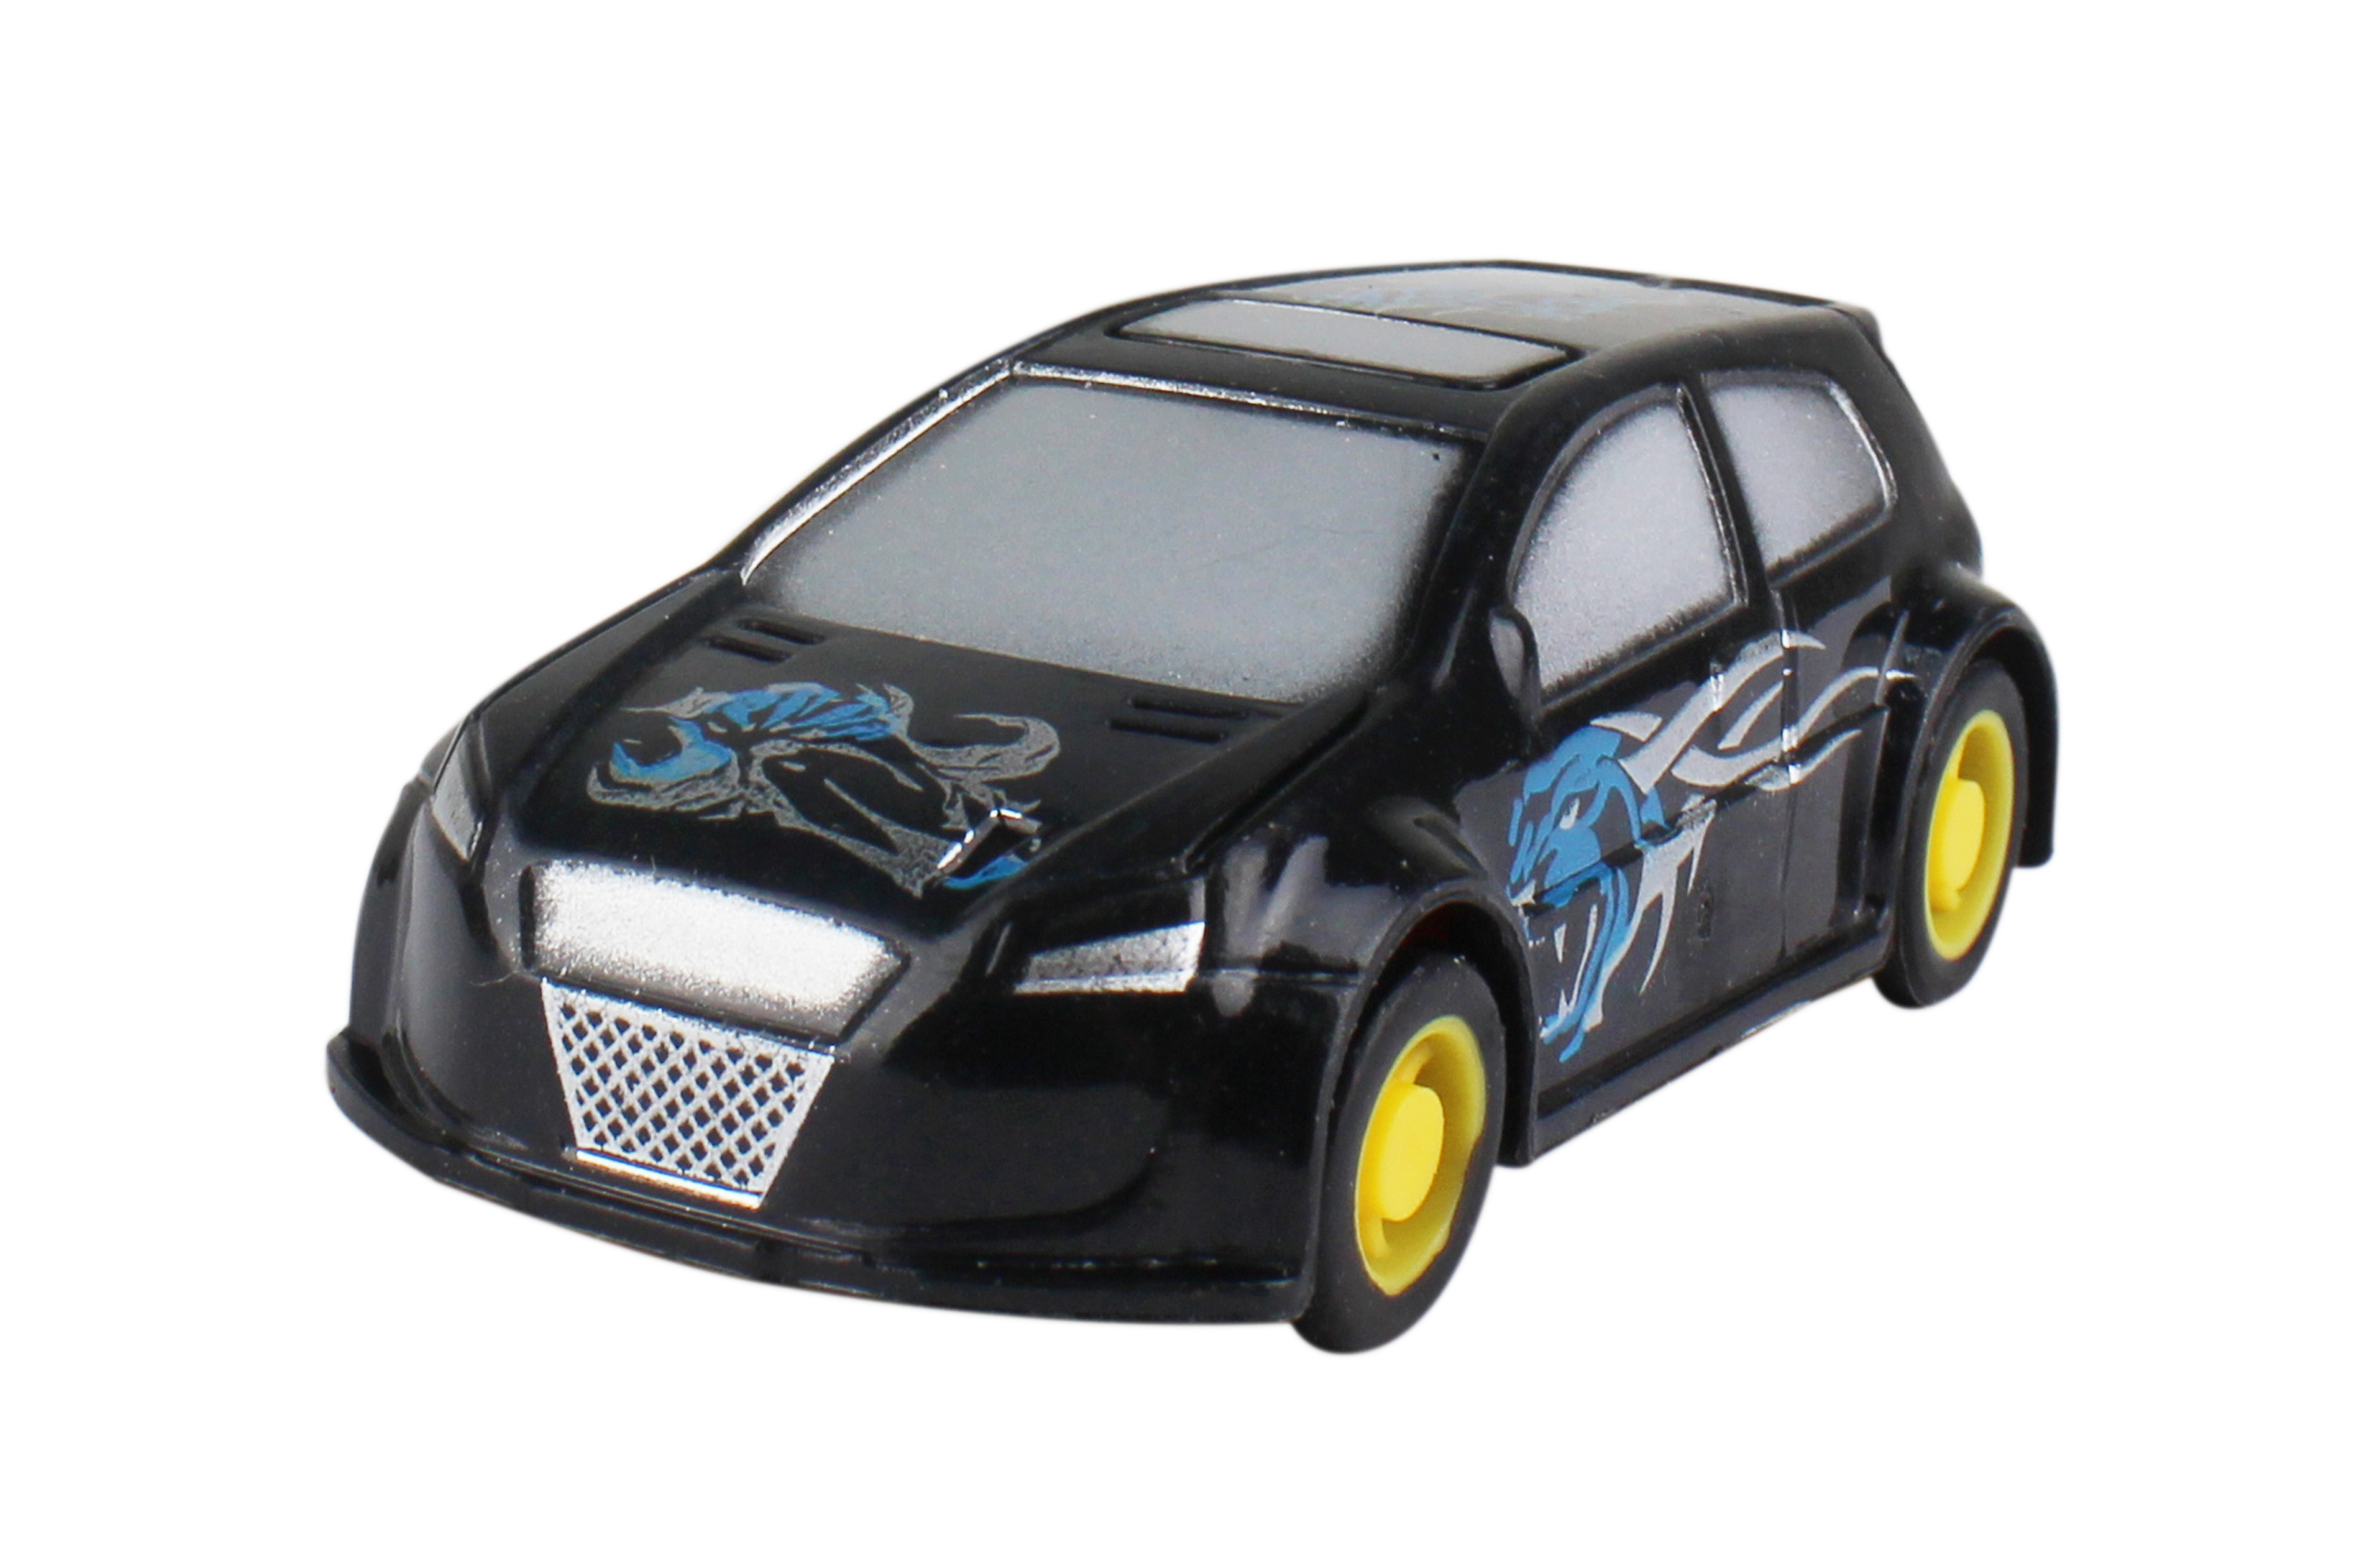 Машинка 1toy Top Gear-Hitchhiker машинки и мотоциклы 1toy top gear black lord т10318